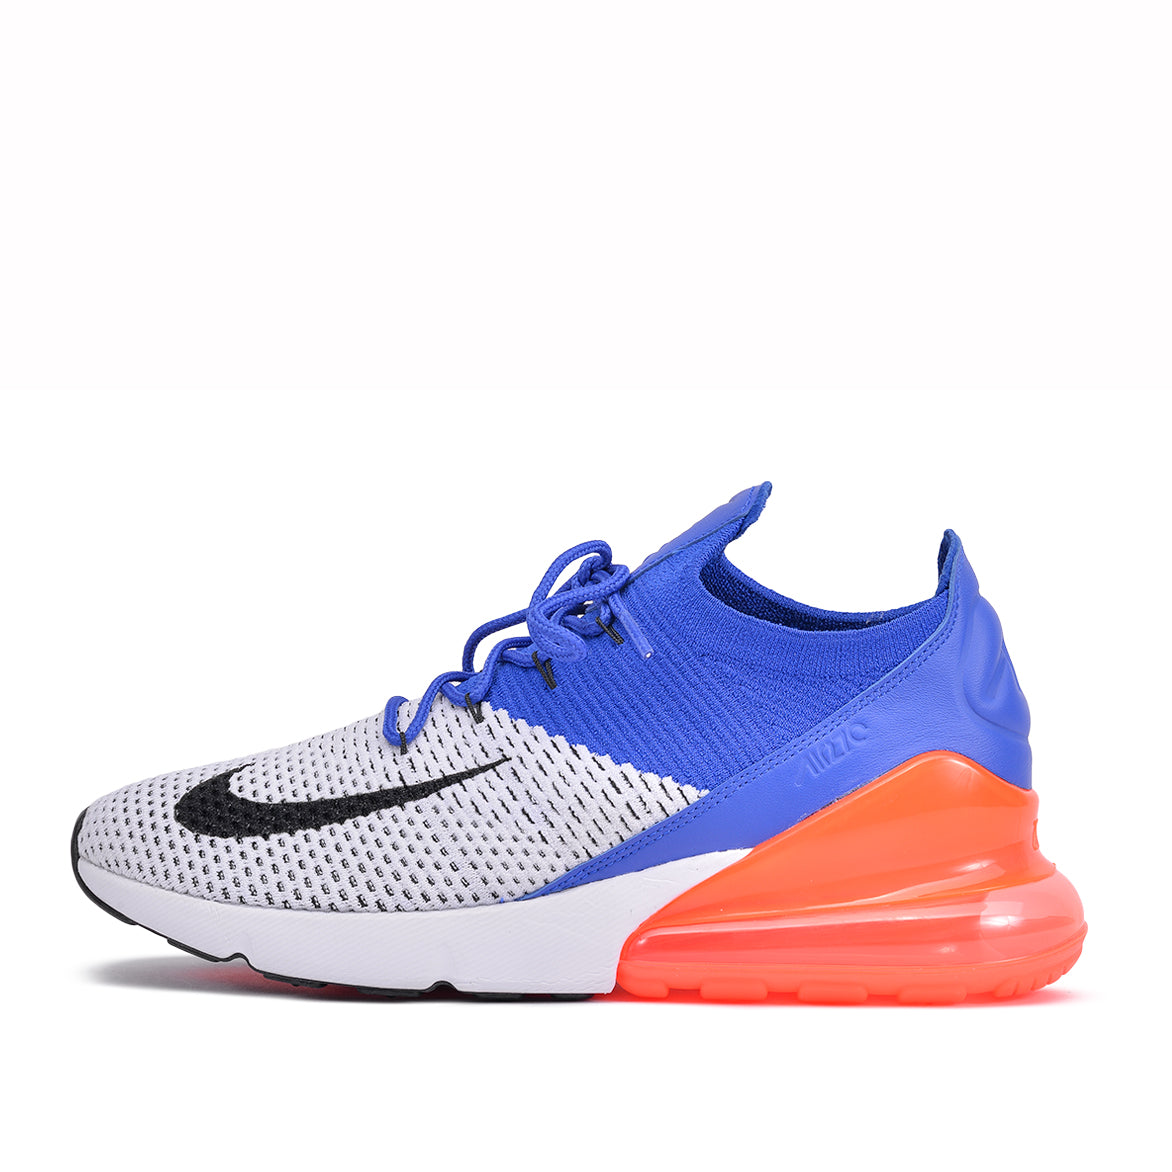 AIR MAX 270 FLYKNIT - RACER BLUE   TOTAL CRIMSON  476d69df4